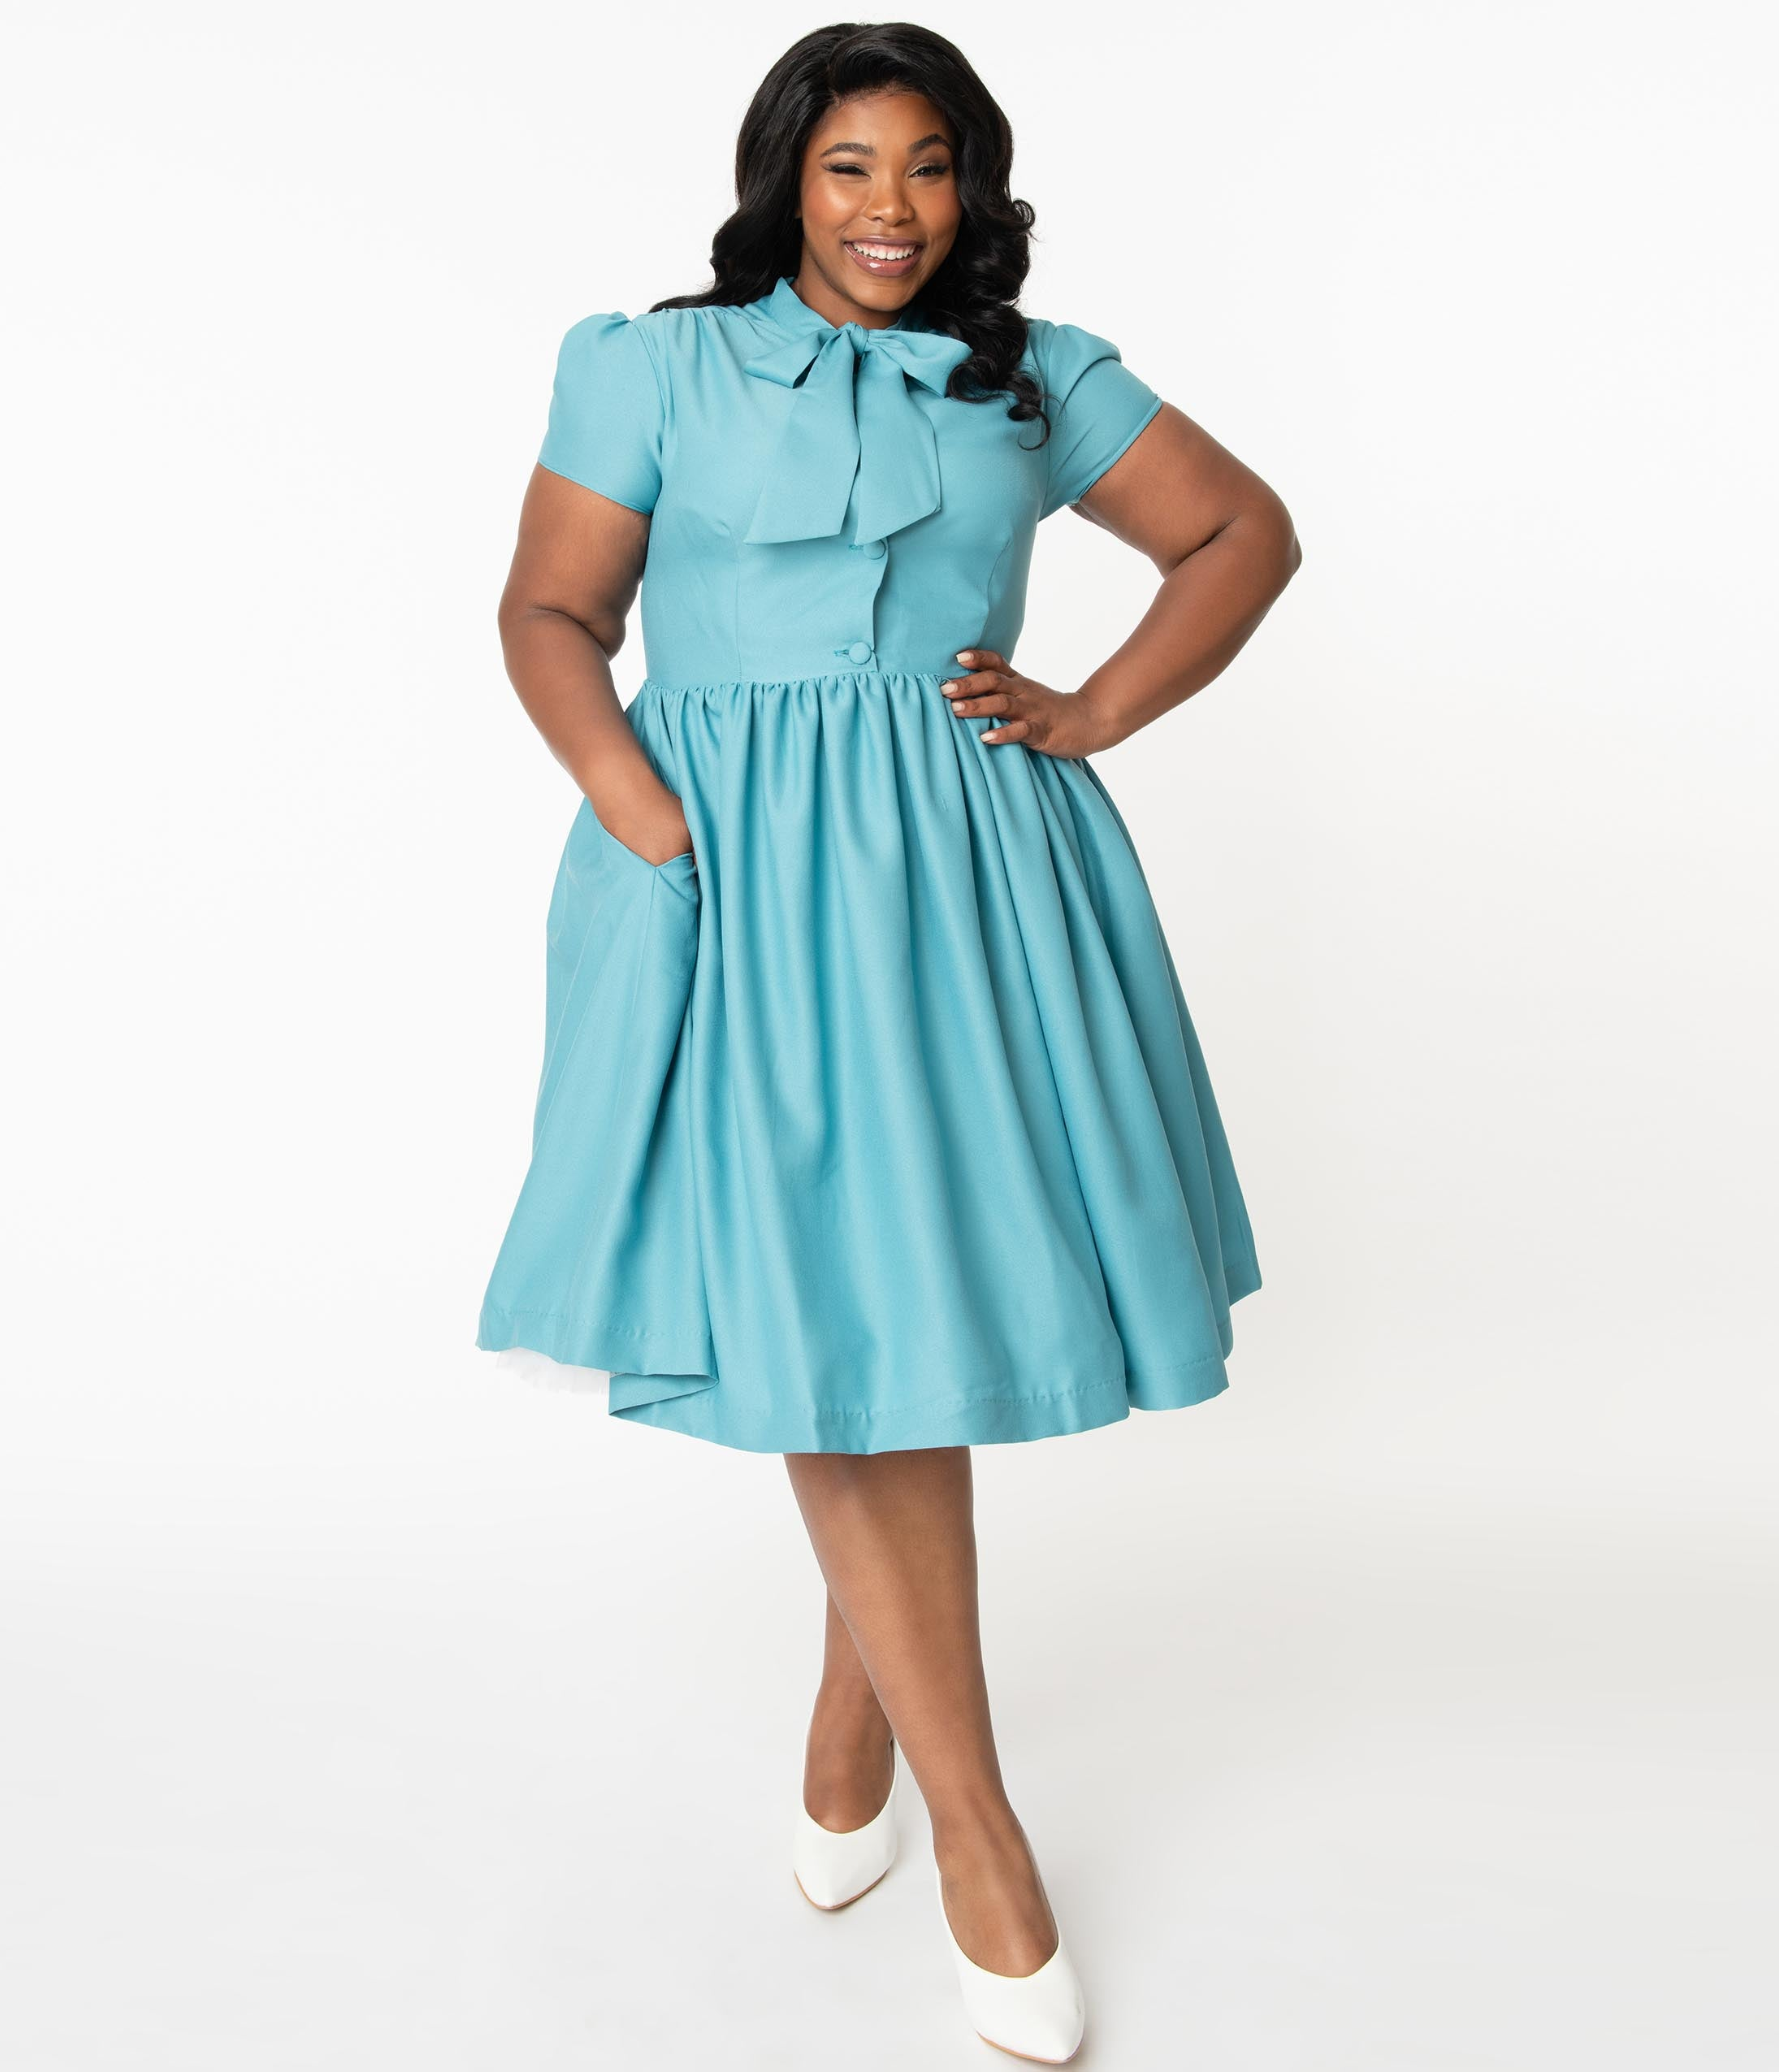 Vintage 50s Dresses: Best 1950s Dress Styles Plus Size 1950S Style Sky Blue Estelle Swing Dress $88.00 AT vintagedancer.com